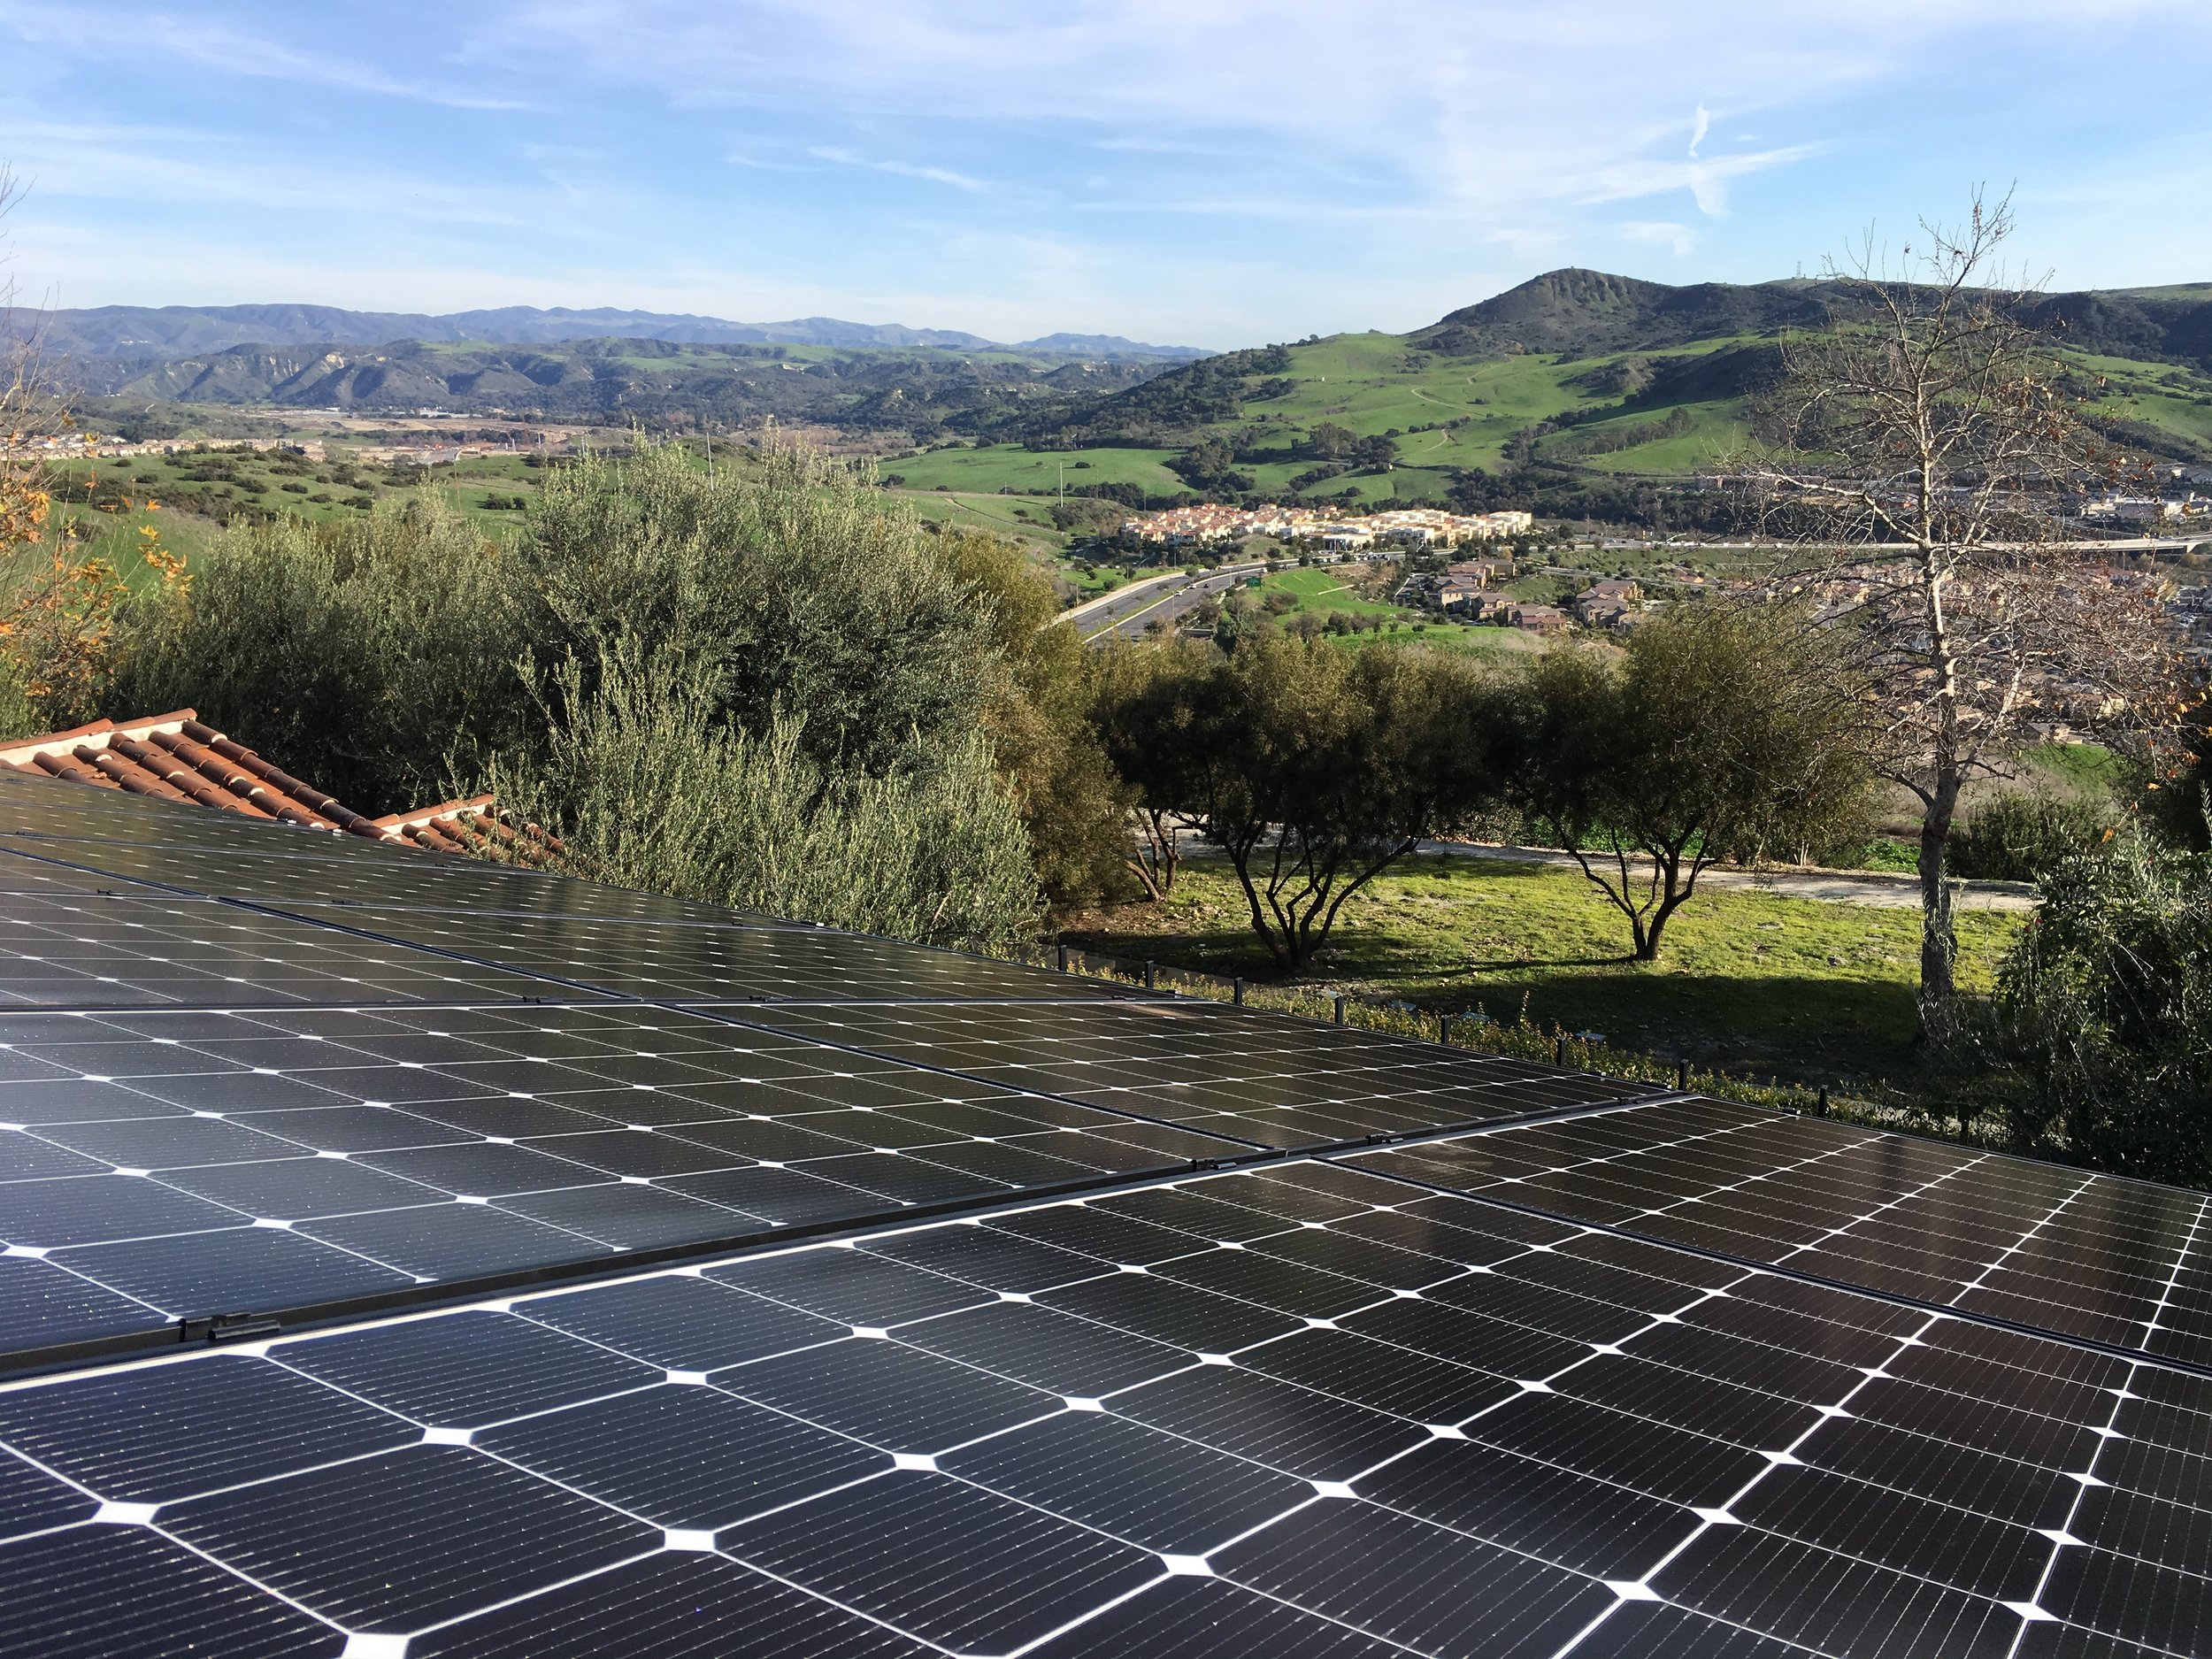 LADERA RANCH, CA - 32 high efficiency PV modules total to 10.7 kWDC located in Ladera Ranch. This system was commissioned in 2019 and is expected to save the Homeowner over $200,000 in electricity bills over the next 25 years.